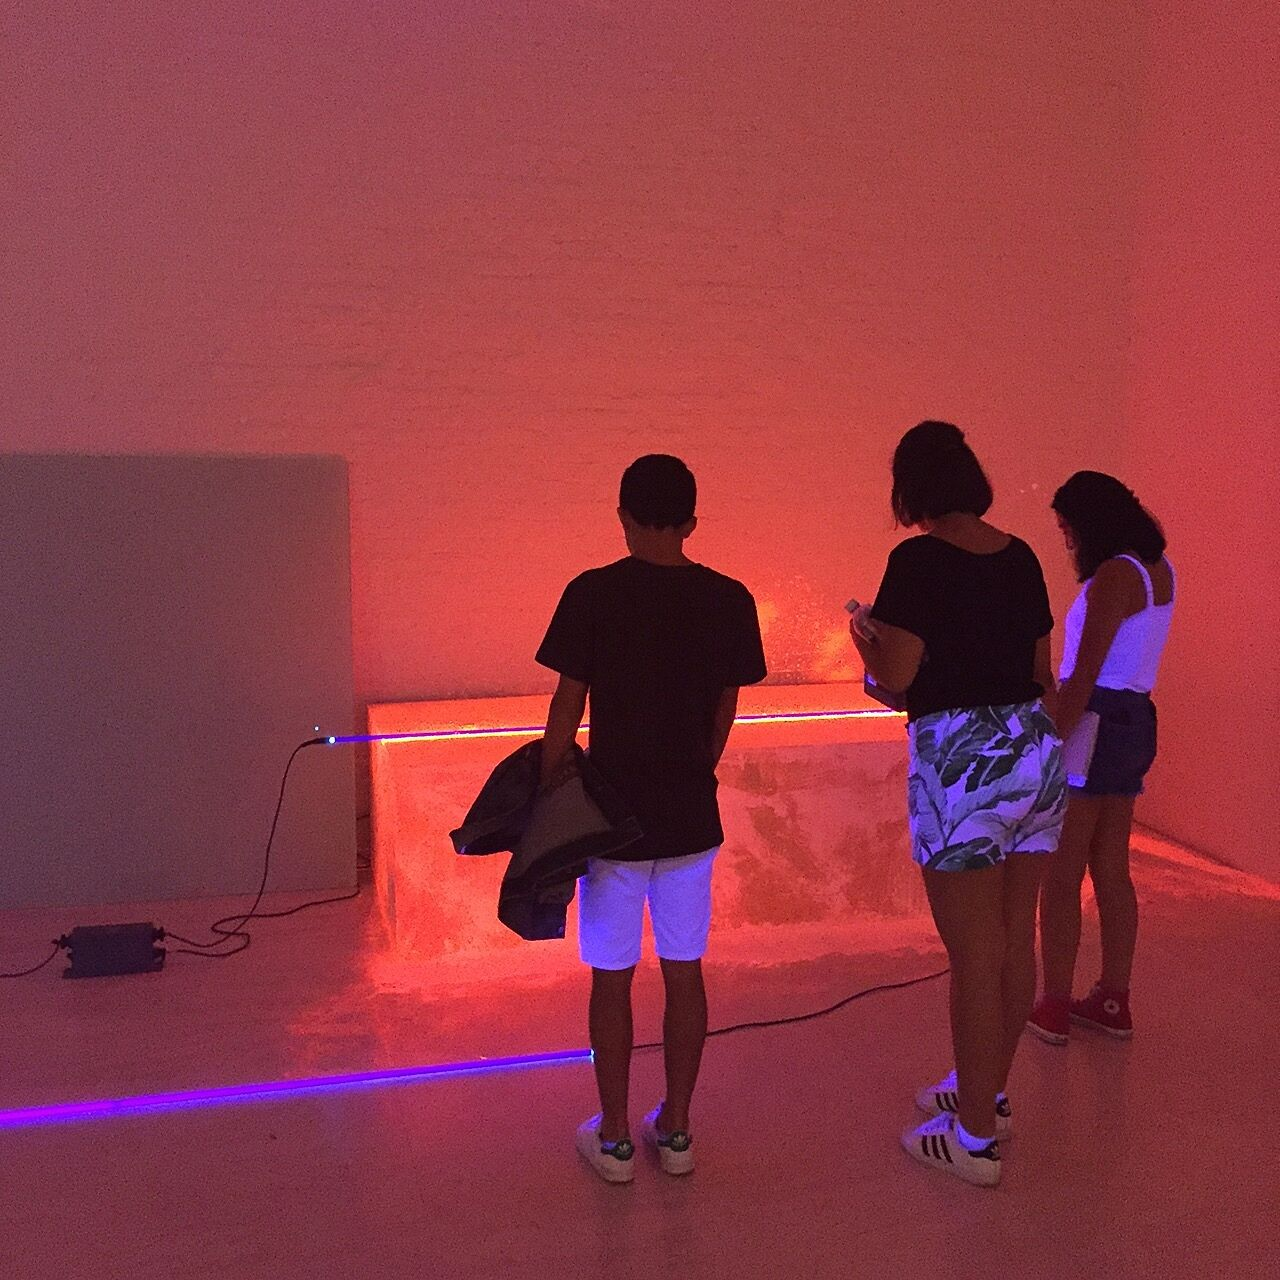 students in a room of neon light and installation